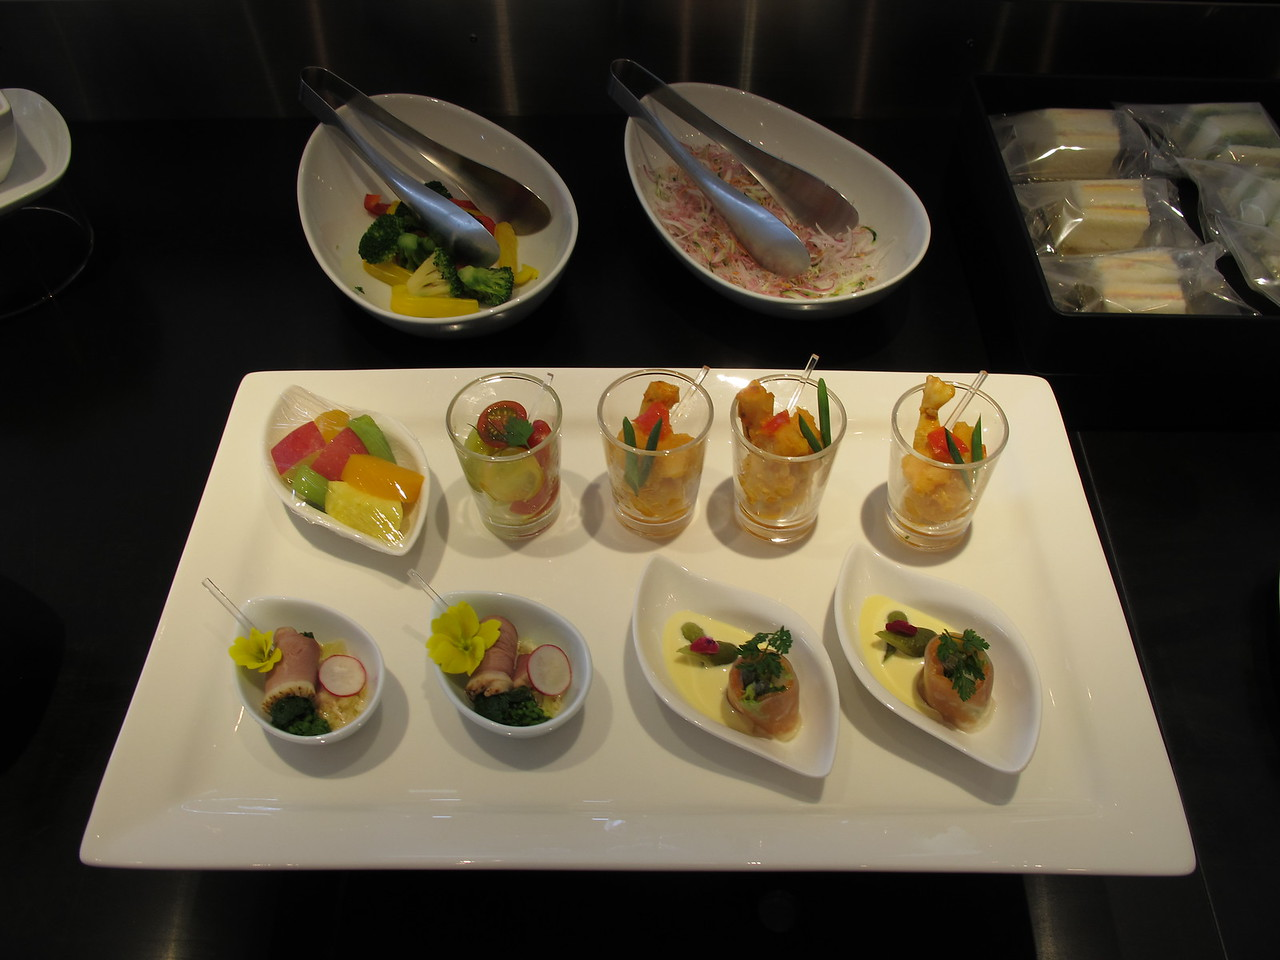 Selection of appetizers and amuse-bouches, ANA Suite Lounge, NRT/RJAA.